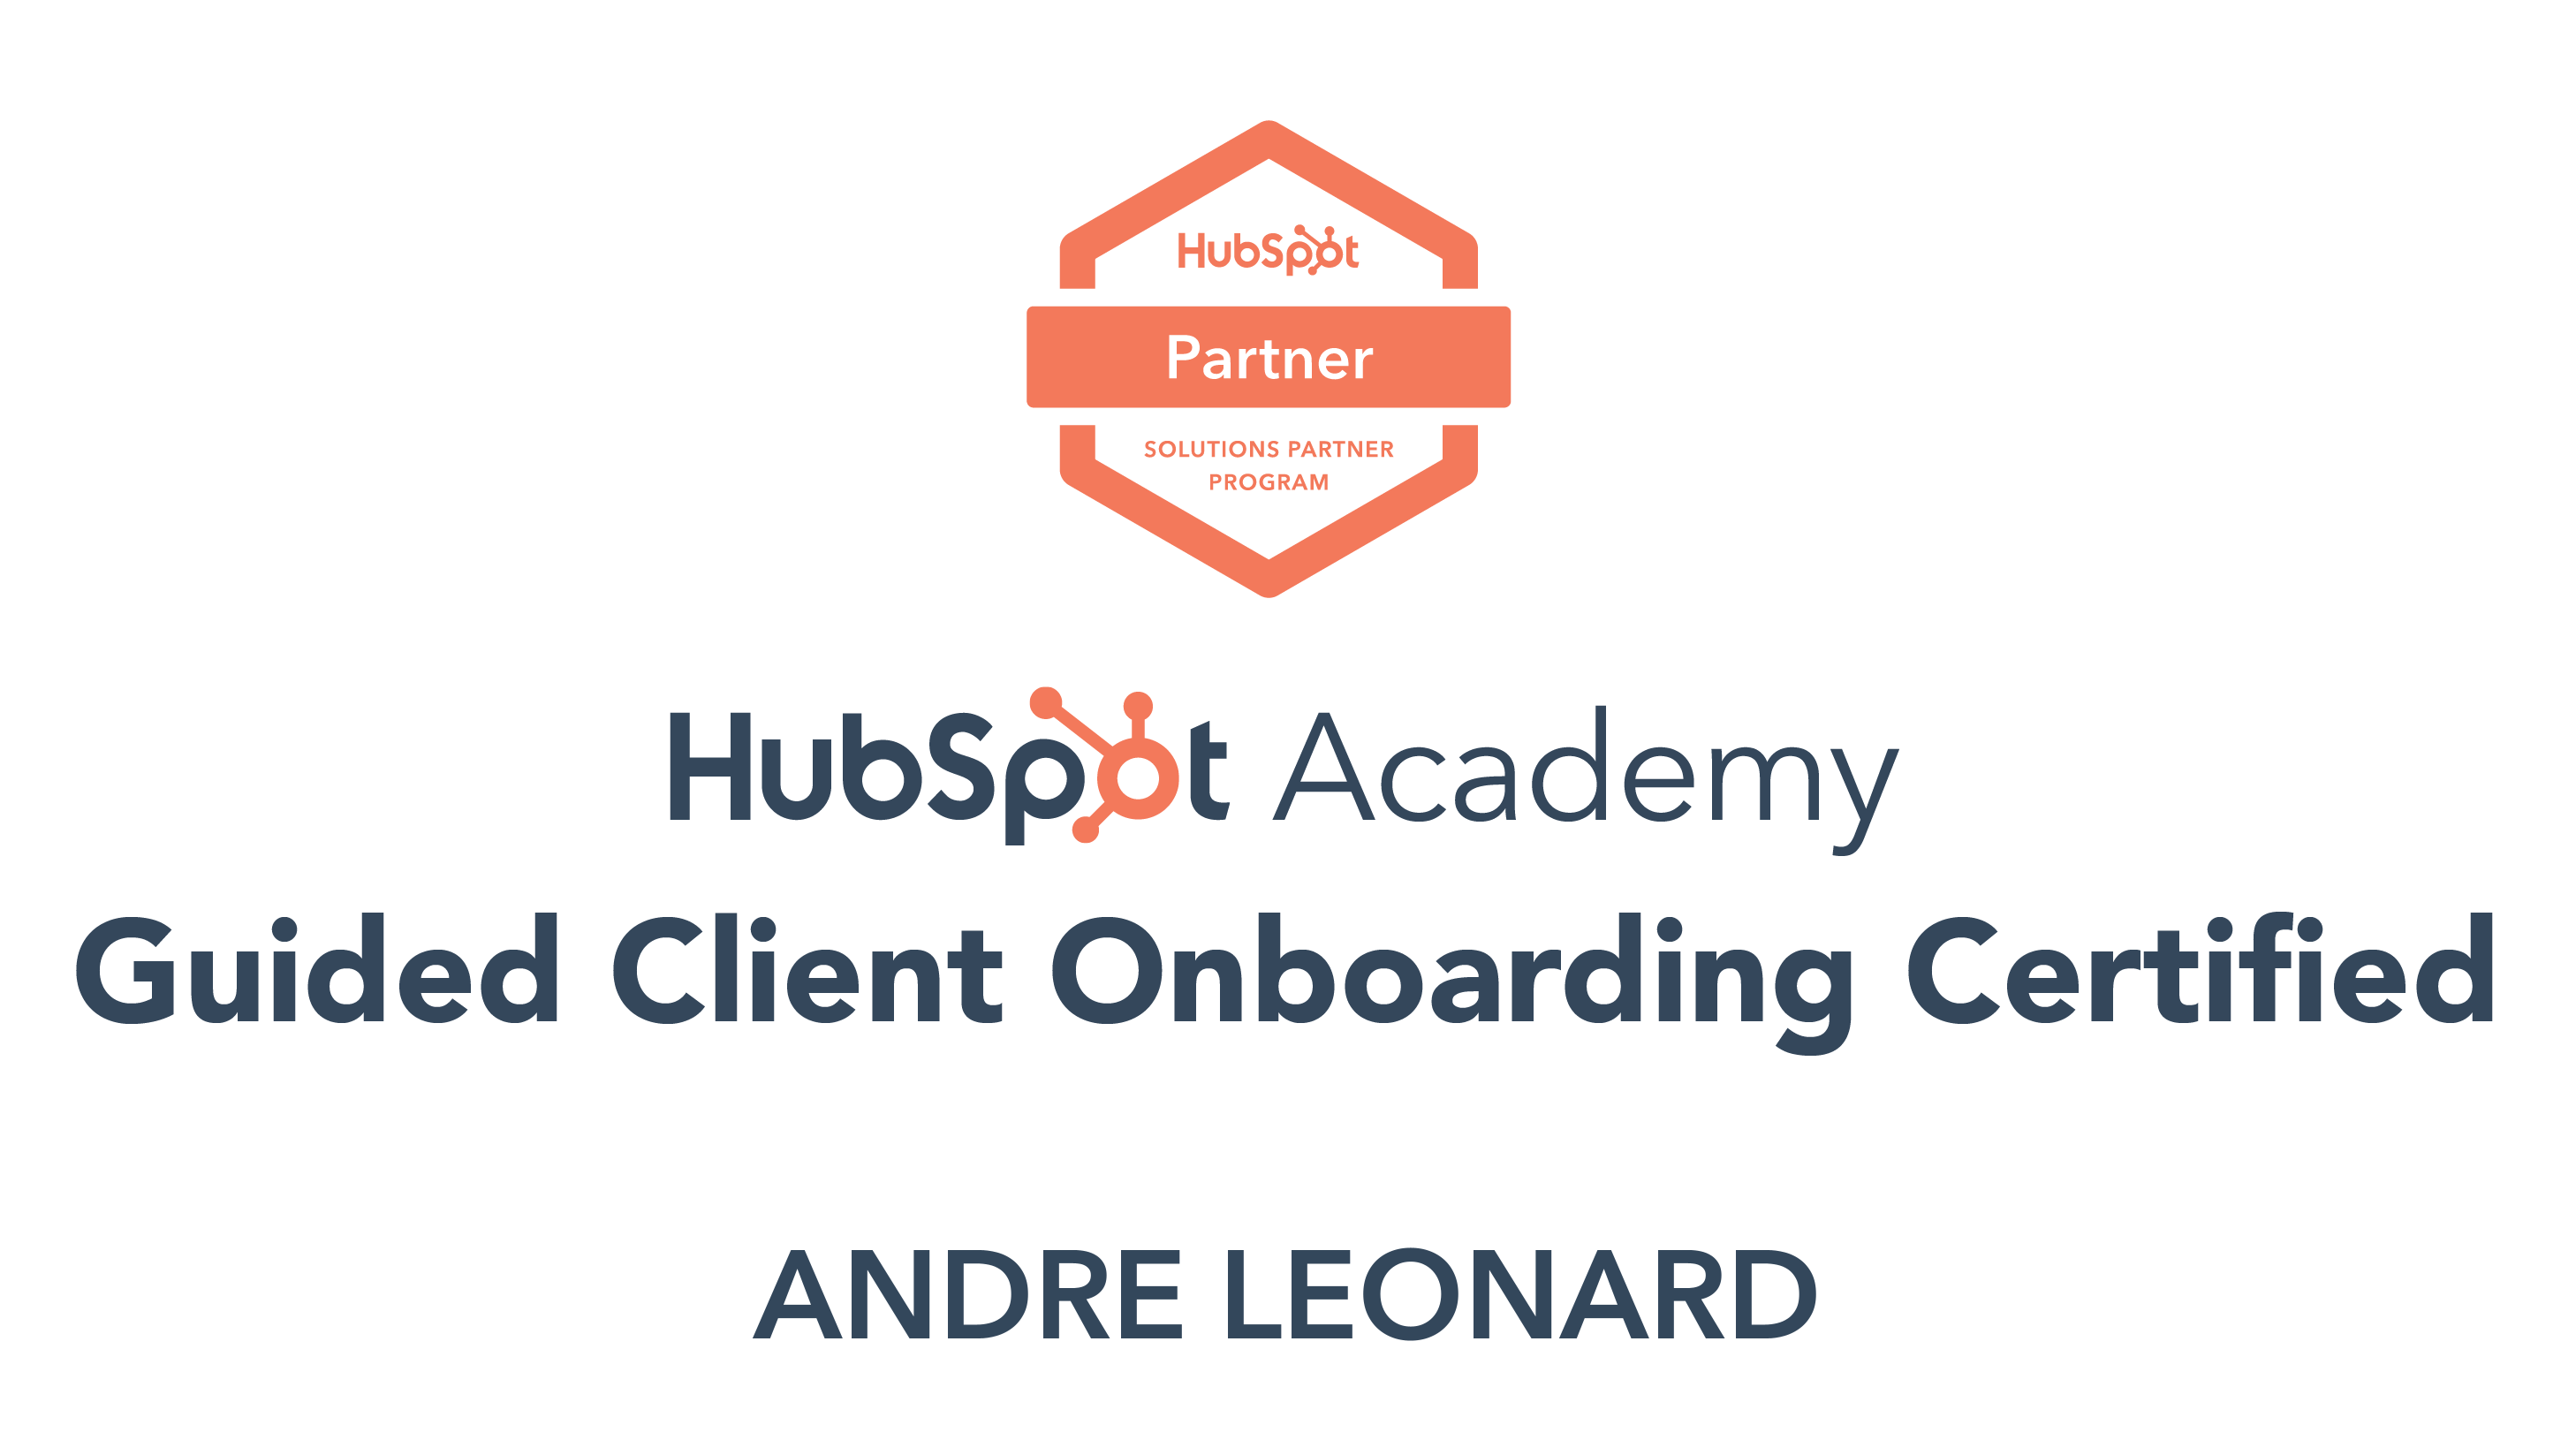 Andre - Guided Client Onboarding